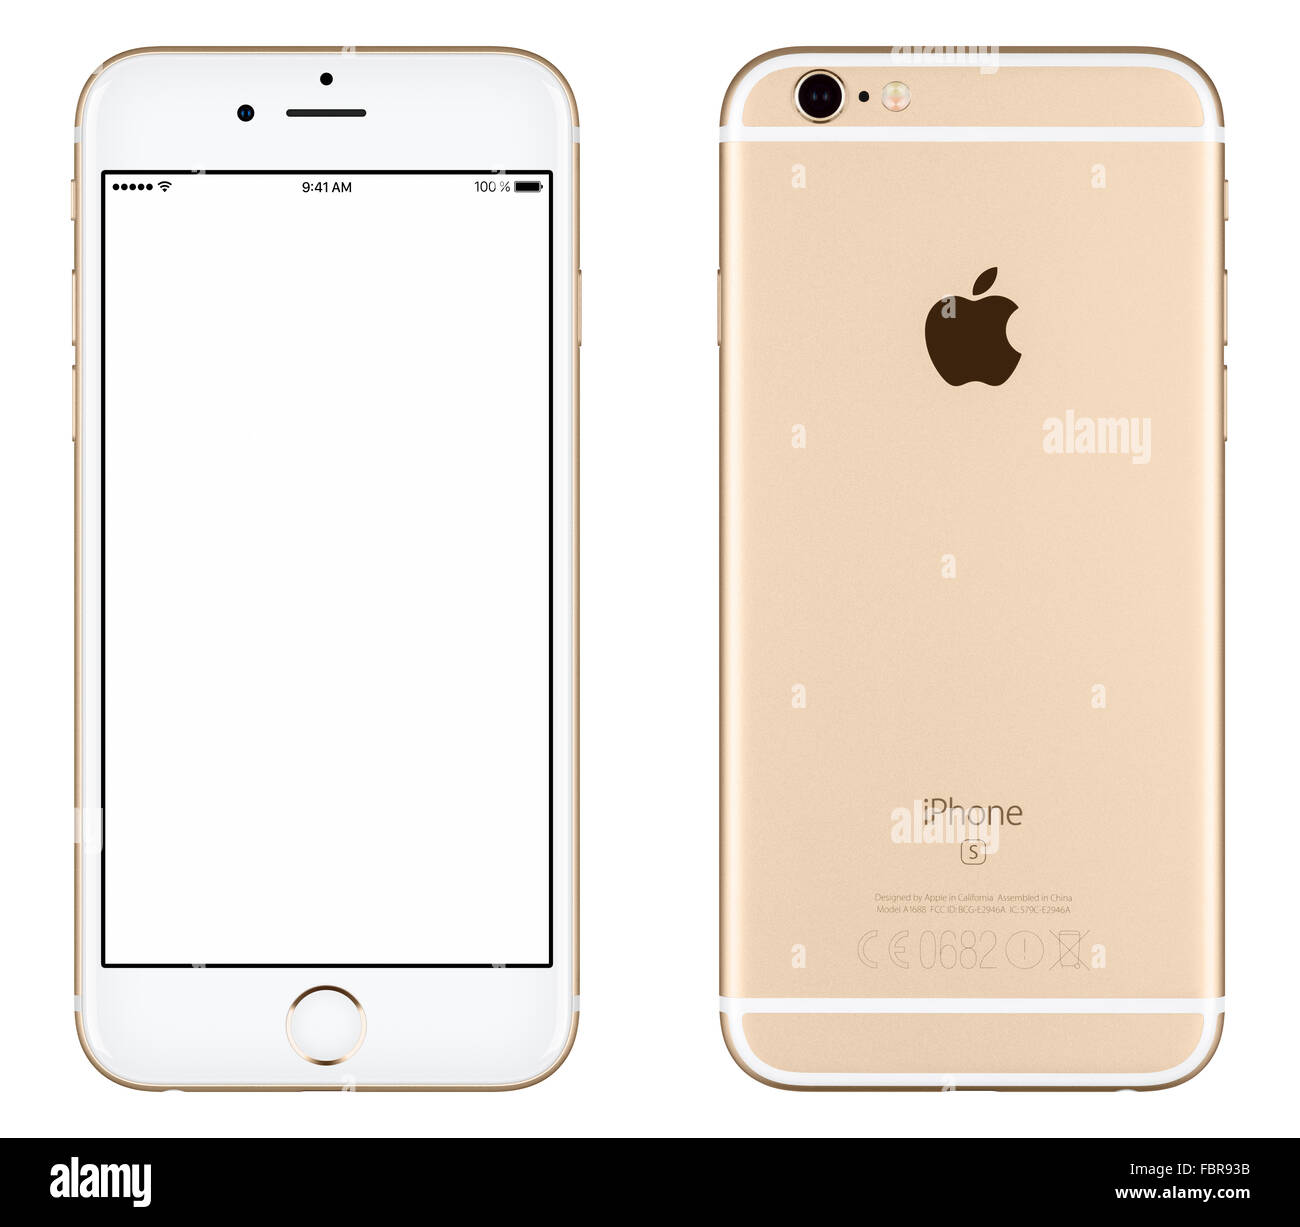 Varna, Bulgaria - October 24, 2015: Front view of Gold Apple iPhone 6S mockup with white screen and back side - Stock Image